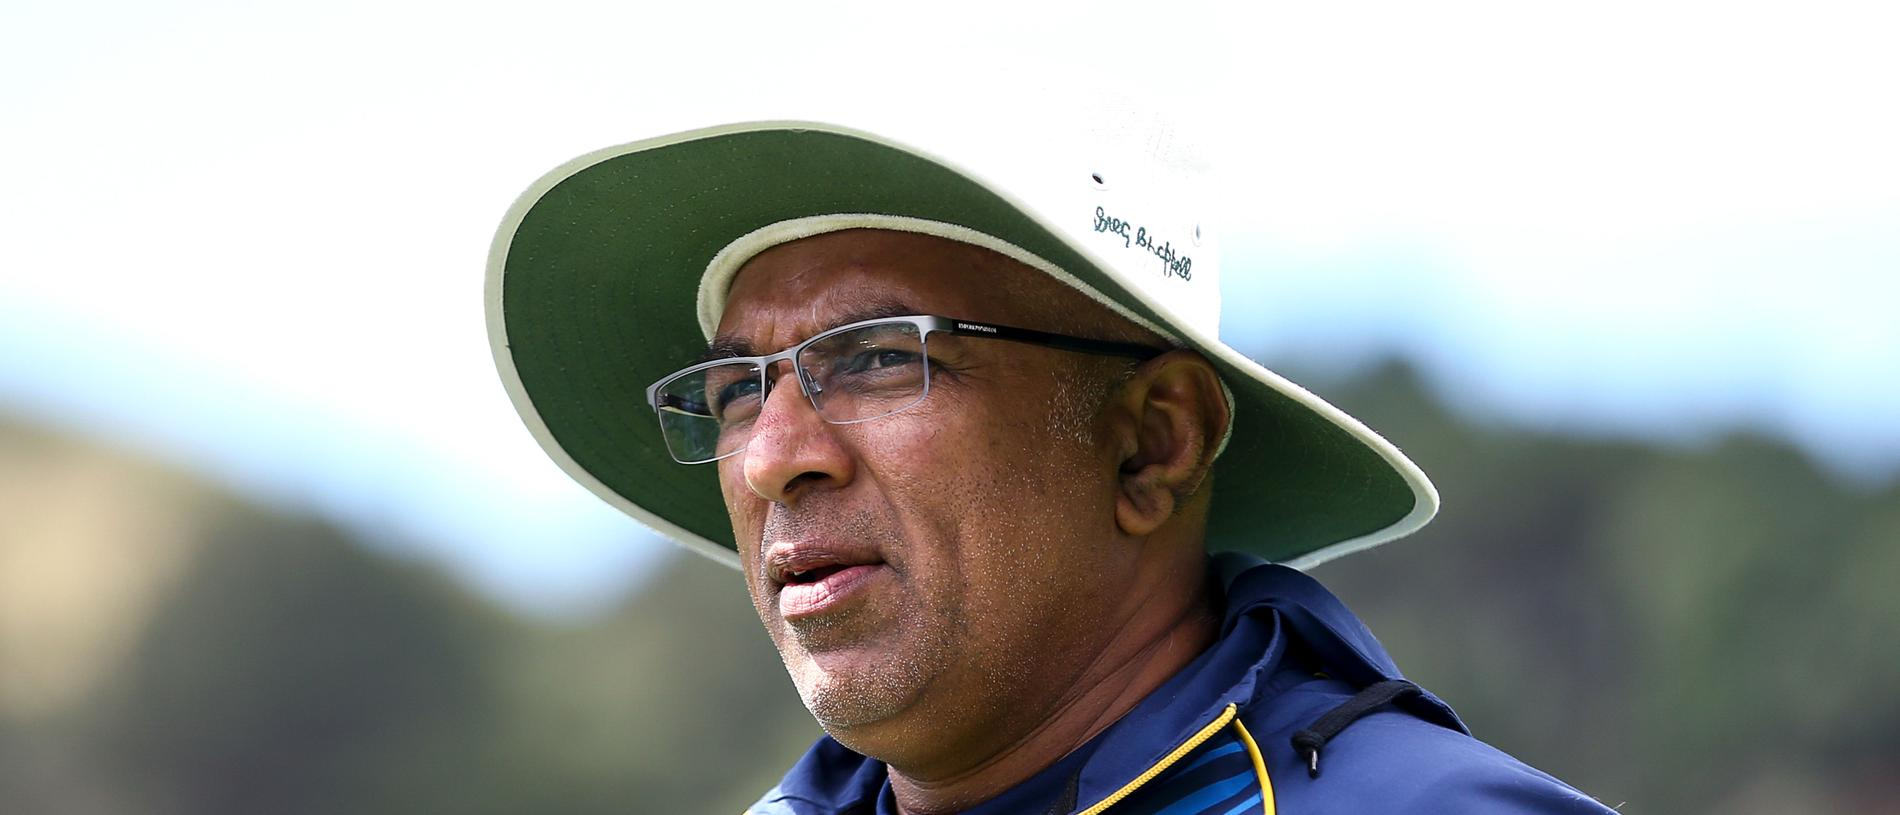 WELLINGTON, NEW ZEALAND - DECEMBER 17:  Coach Chandika Hathurusingha of Sri Lanka looks on during day three of the First Test match in the series between New Zealand and Sri Lanka at Basin Reserve on December 17, 2018 in Wellington, New Zealand.  (Photo by Hagen Hopkins/Getty Images)